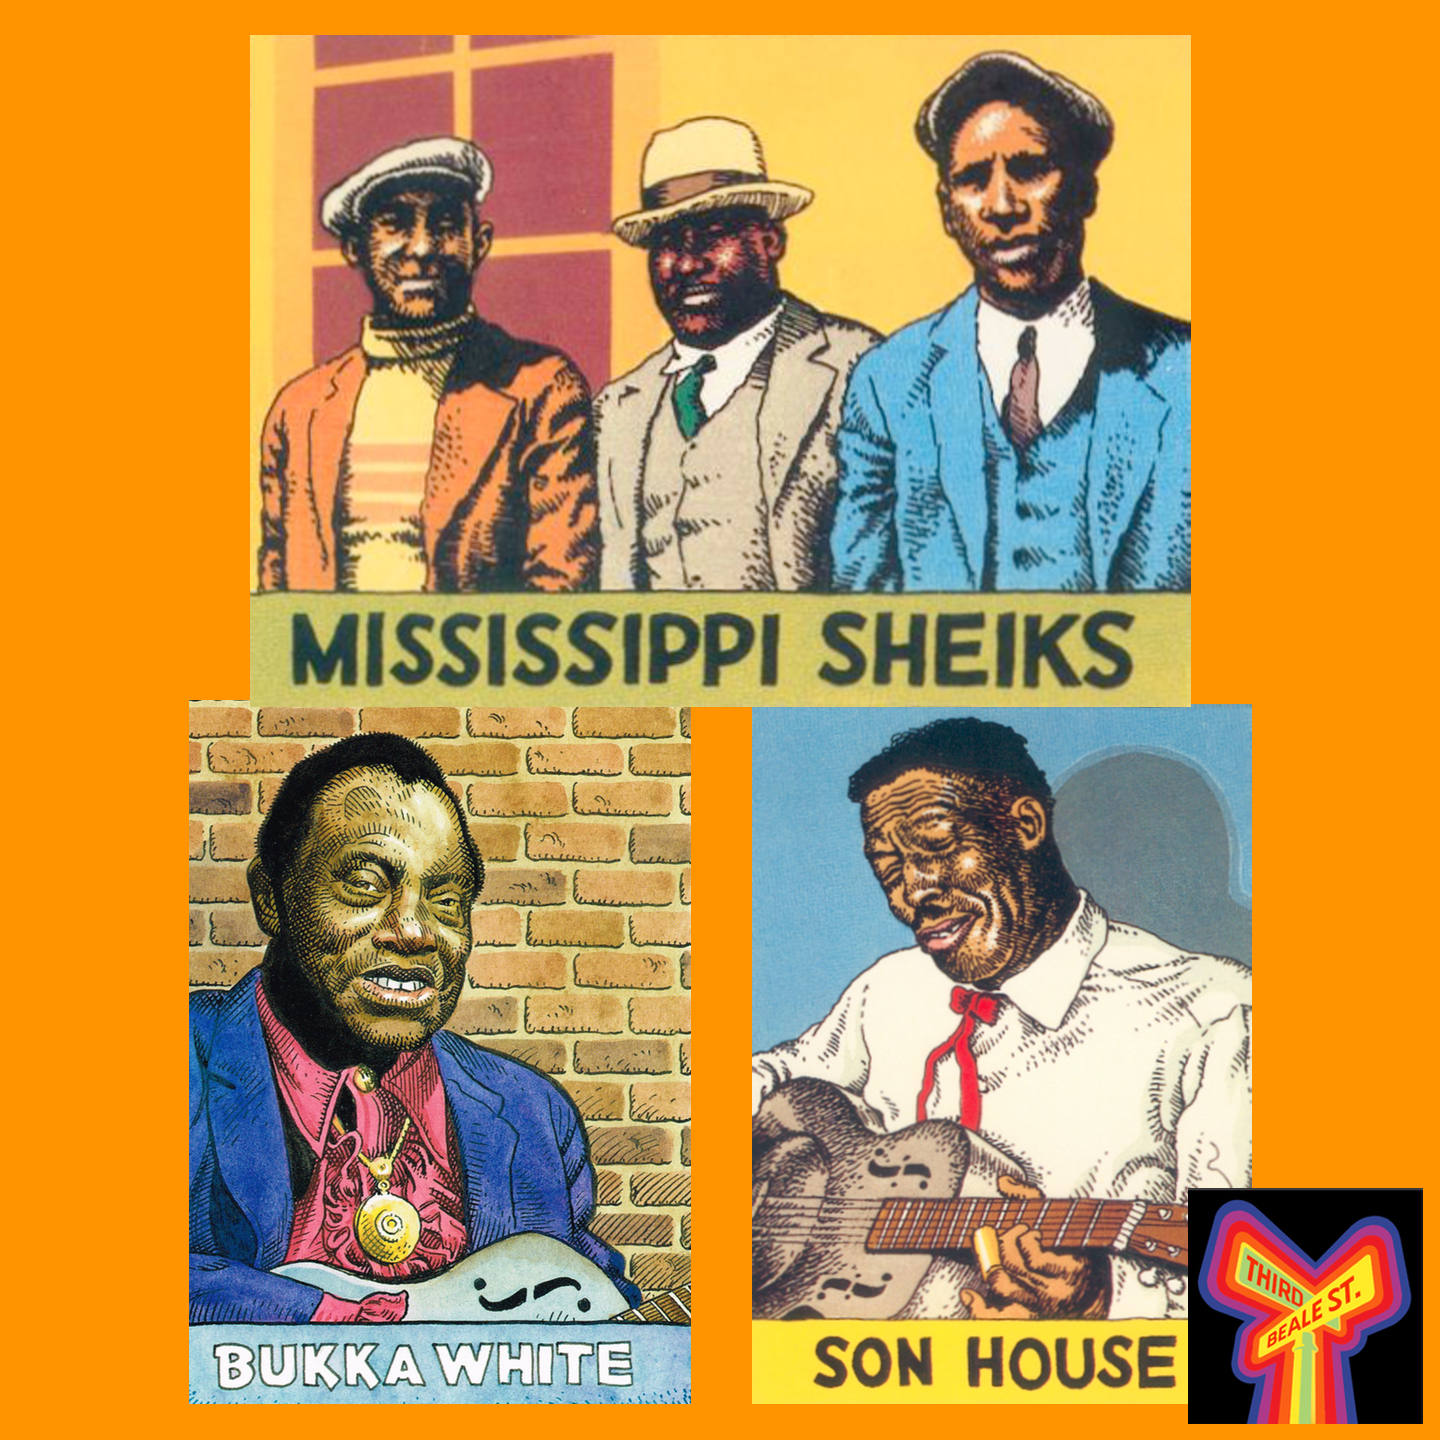 Caption: Pictured: Illustrations of the Mississippi Sheiks and Son House by R. Crumb. Bukka White by William Stout.